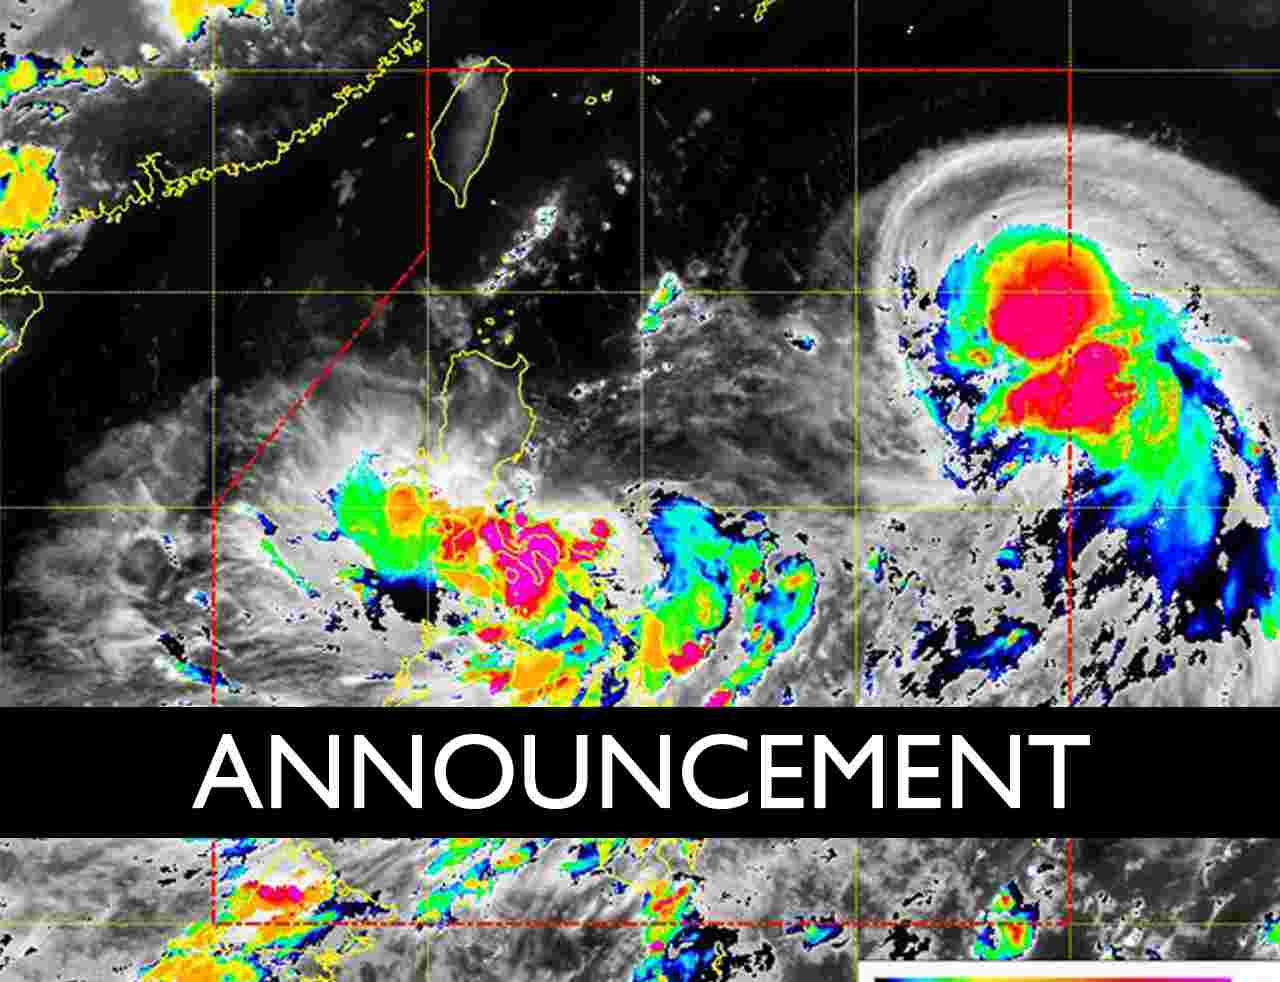 typhoon announcement